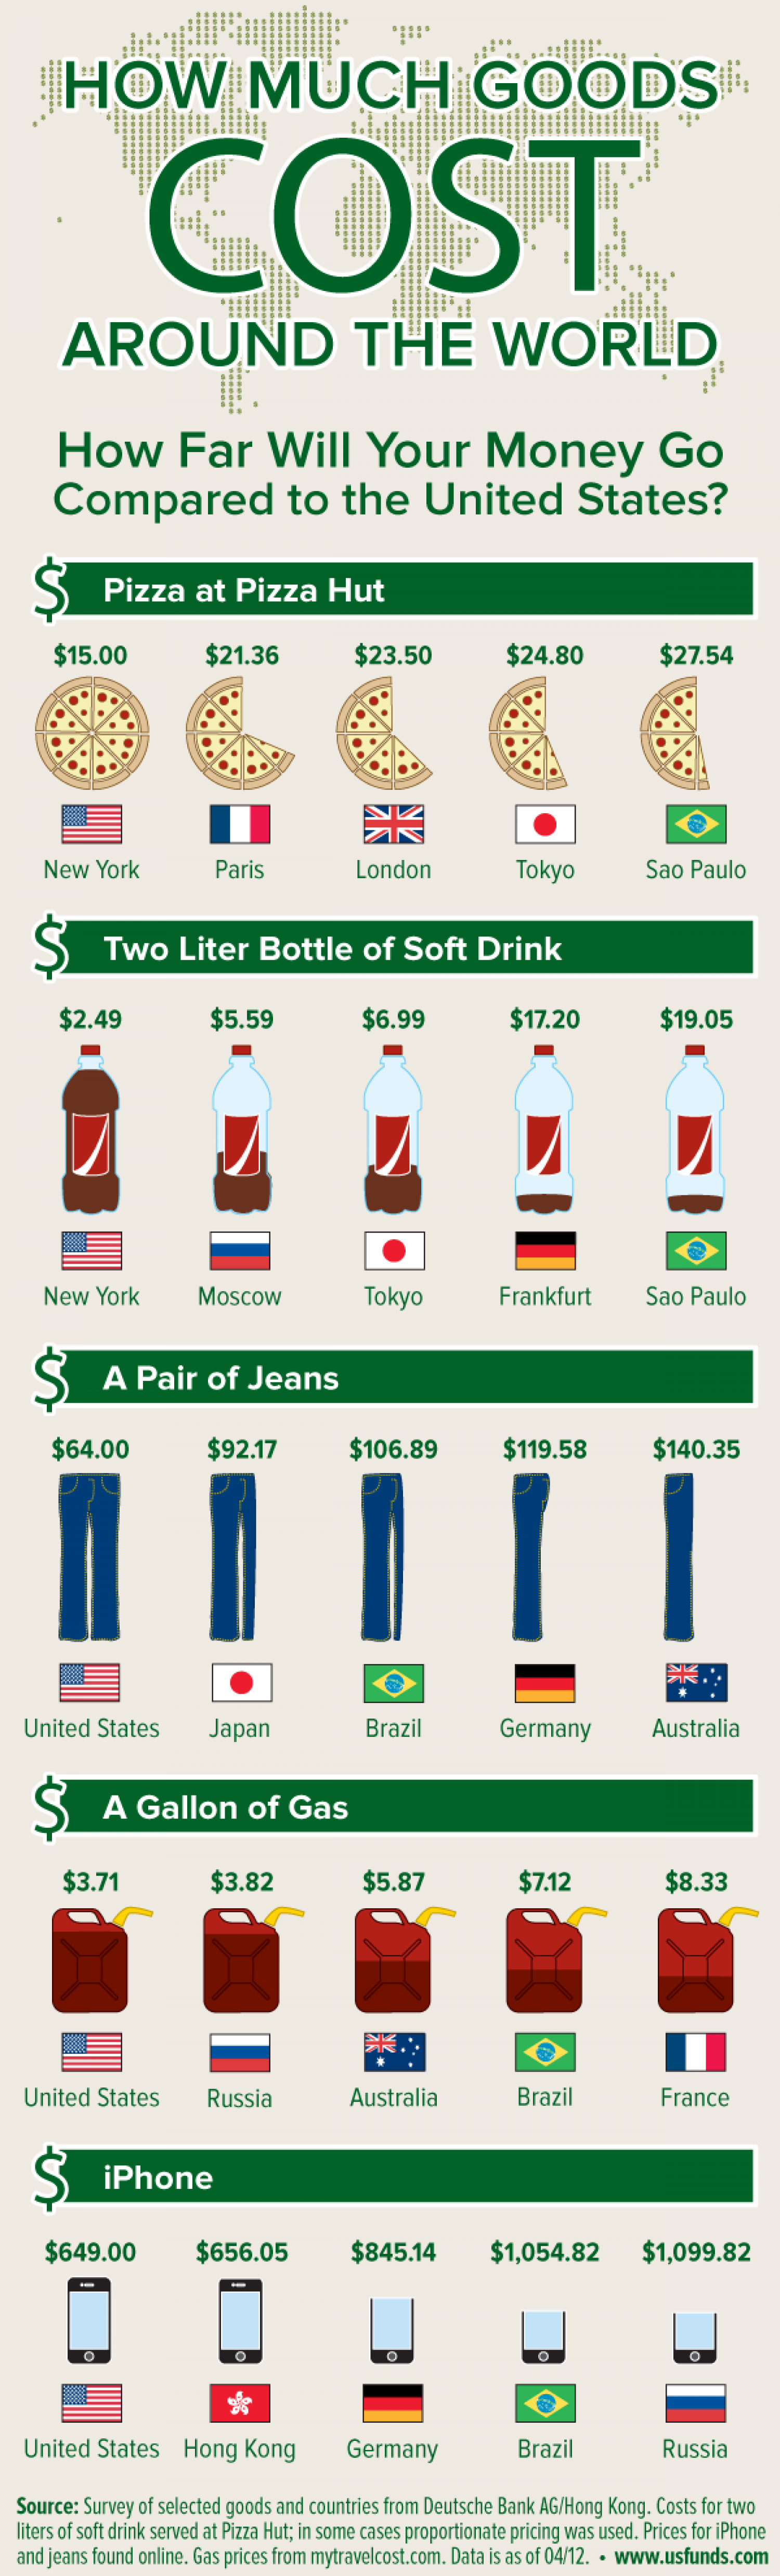 How much goods cost around the world Infographic